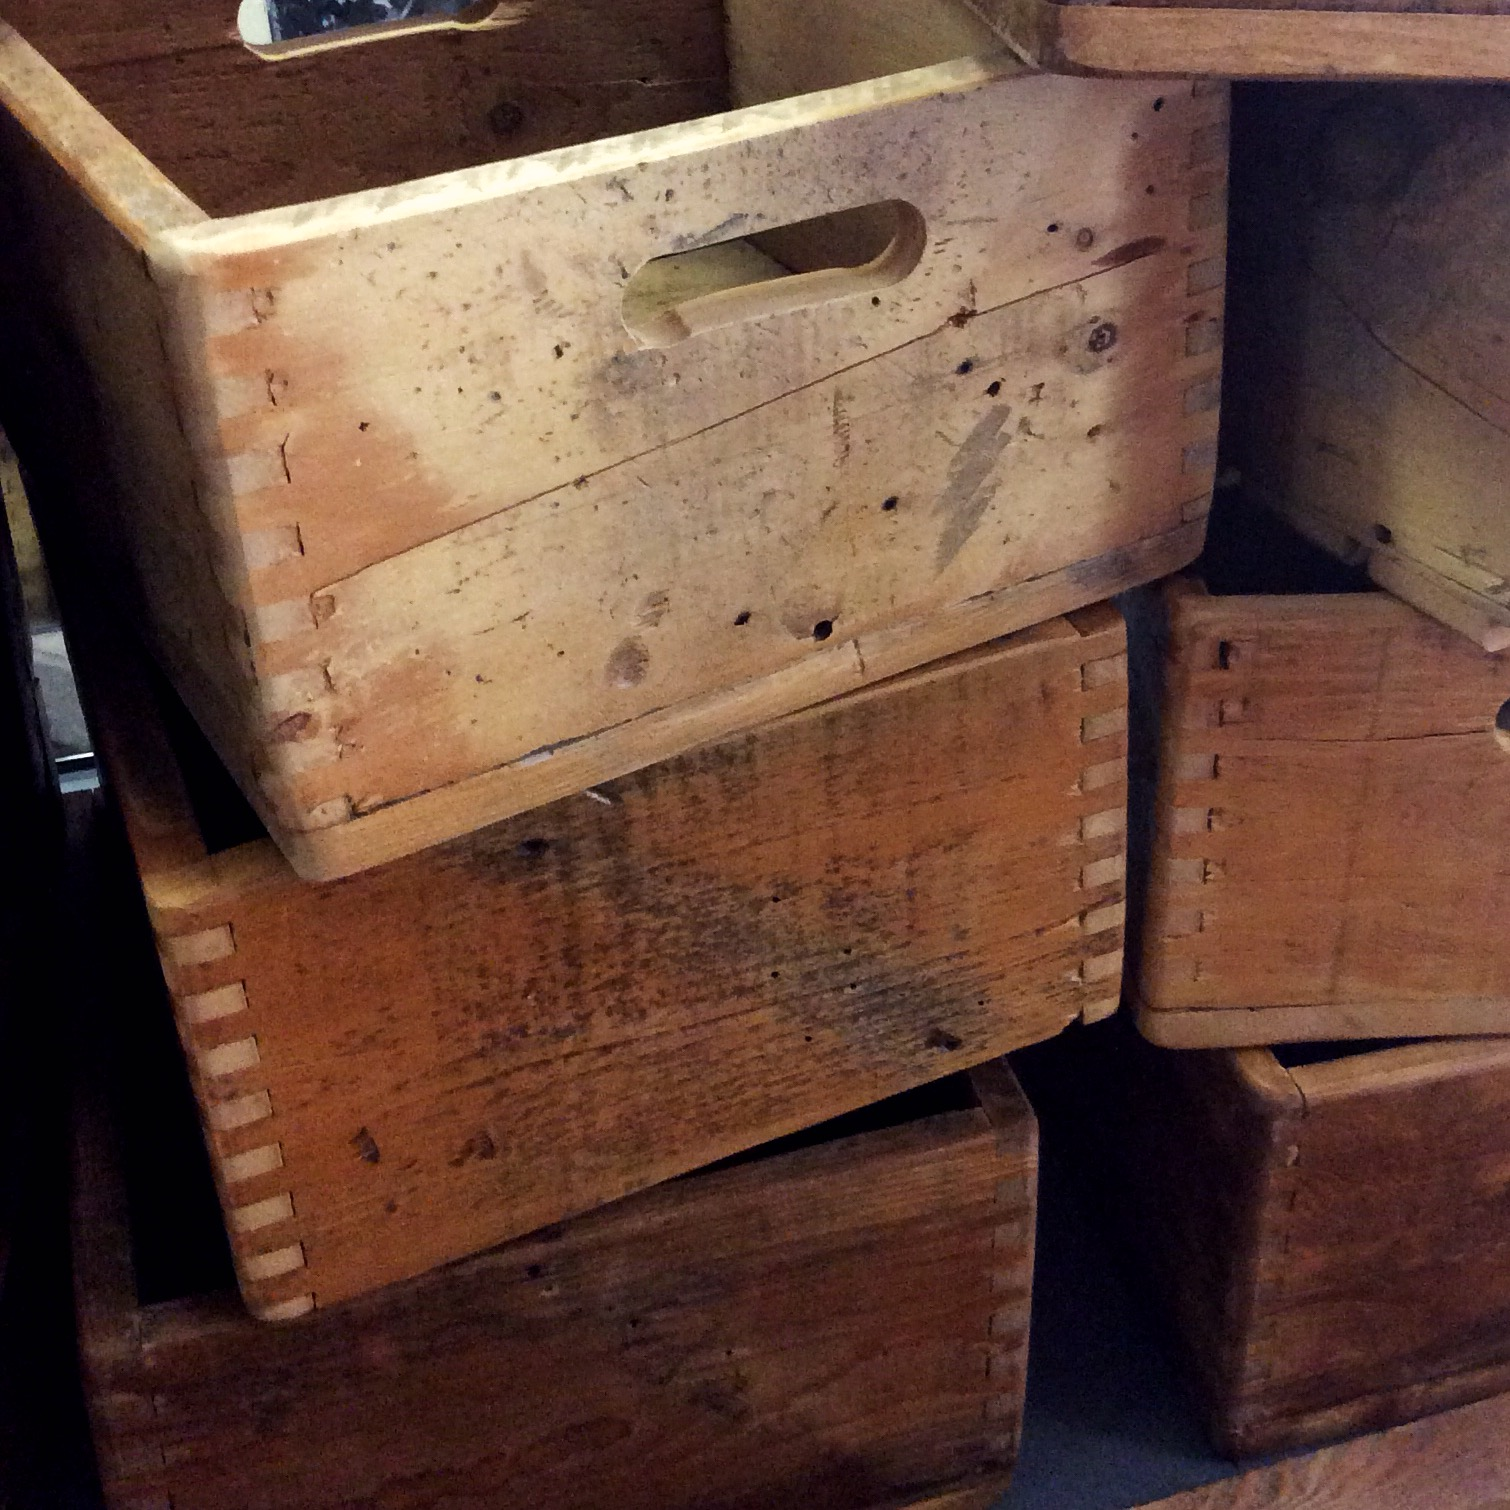 $70 ea   Brand new crate types! These were created to have neat looking edges. Each one is unique and made of old reclaimed wood. Some have natural holes and knots, and wear from weather and age. These beautiful crates are slightly smaller than our original large crates and can also be customized with a logo or name!